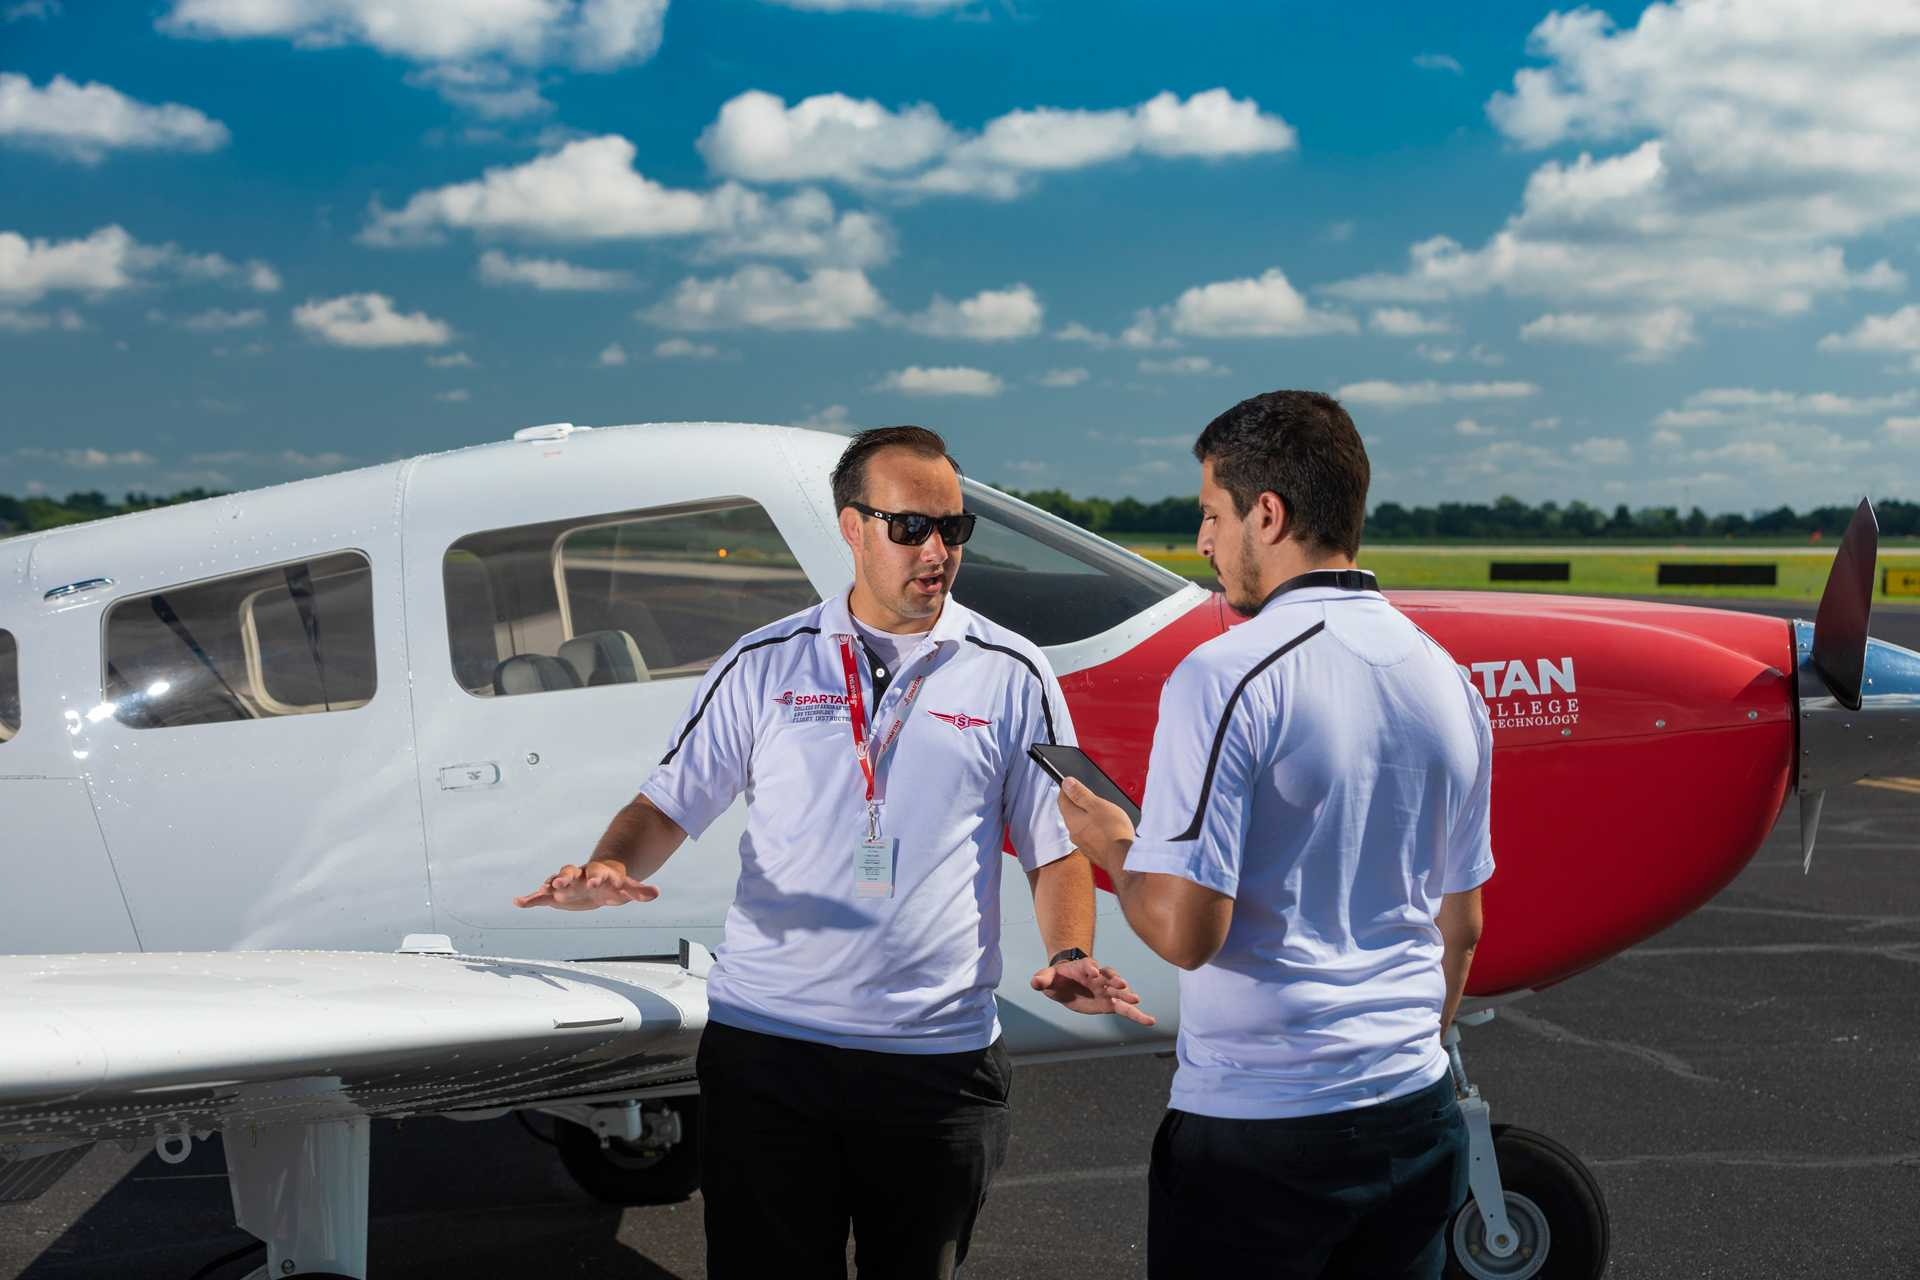 flight instructor with student in front of plane